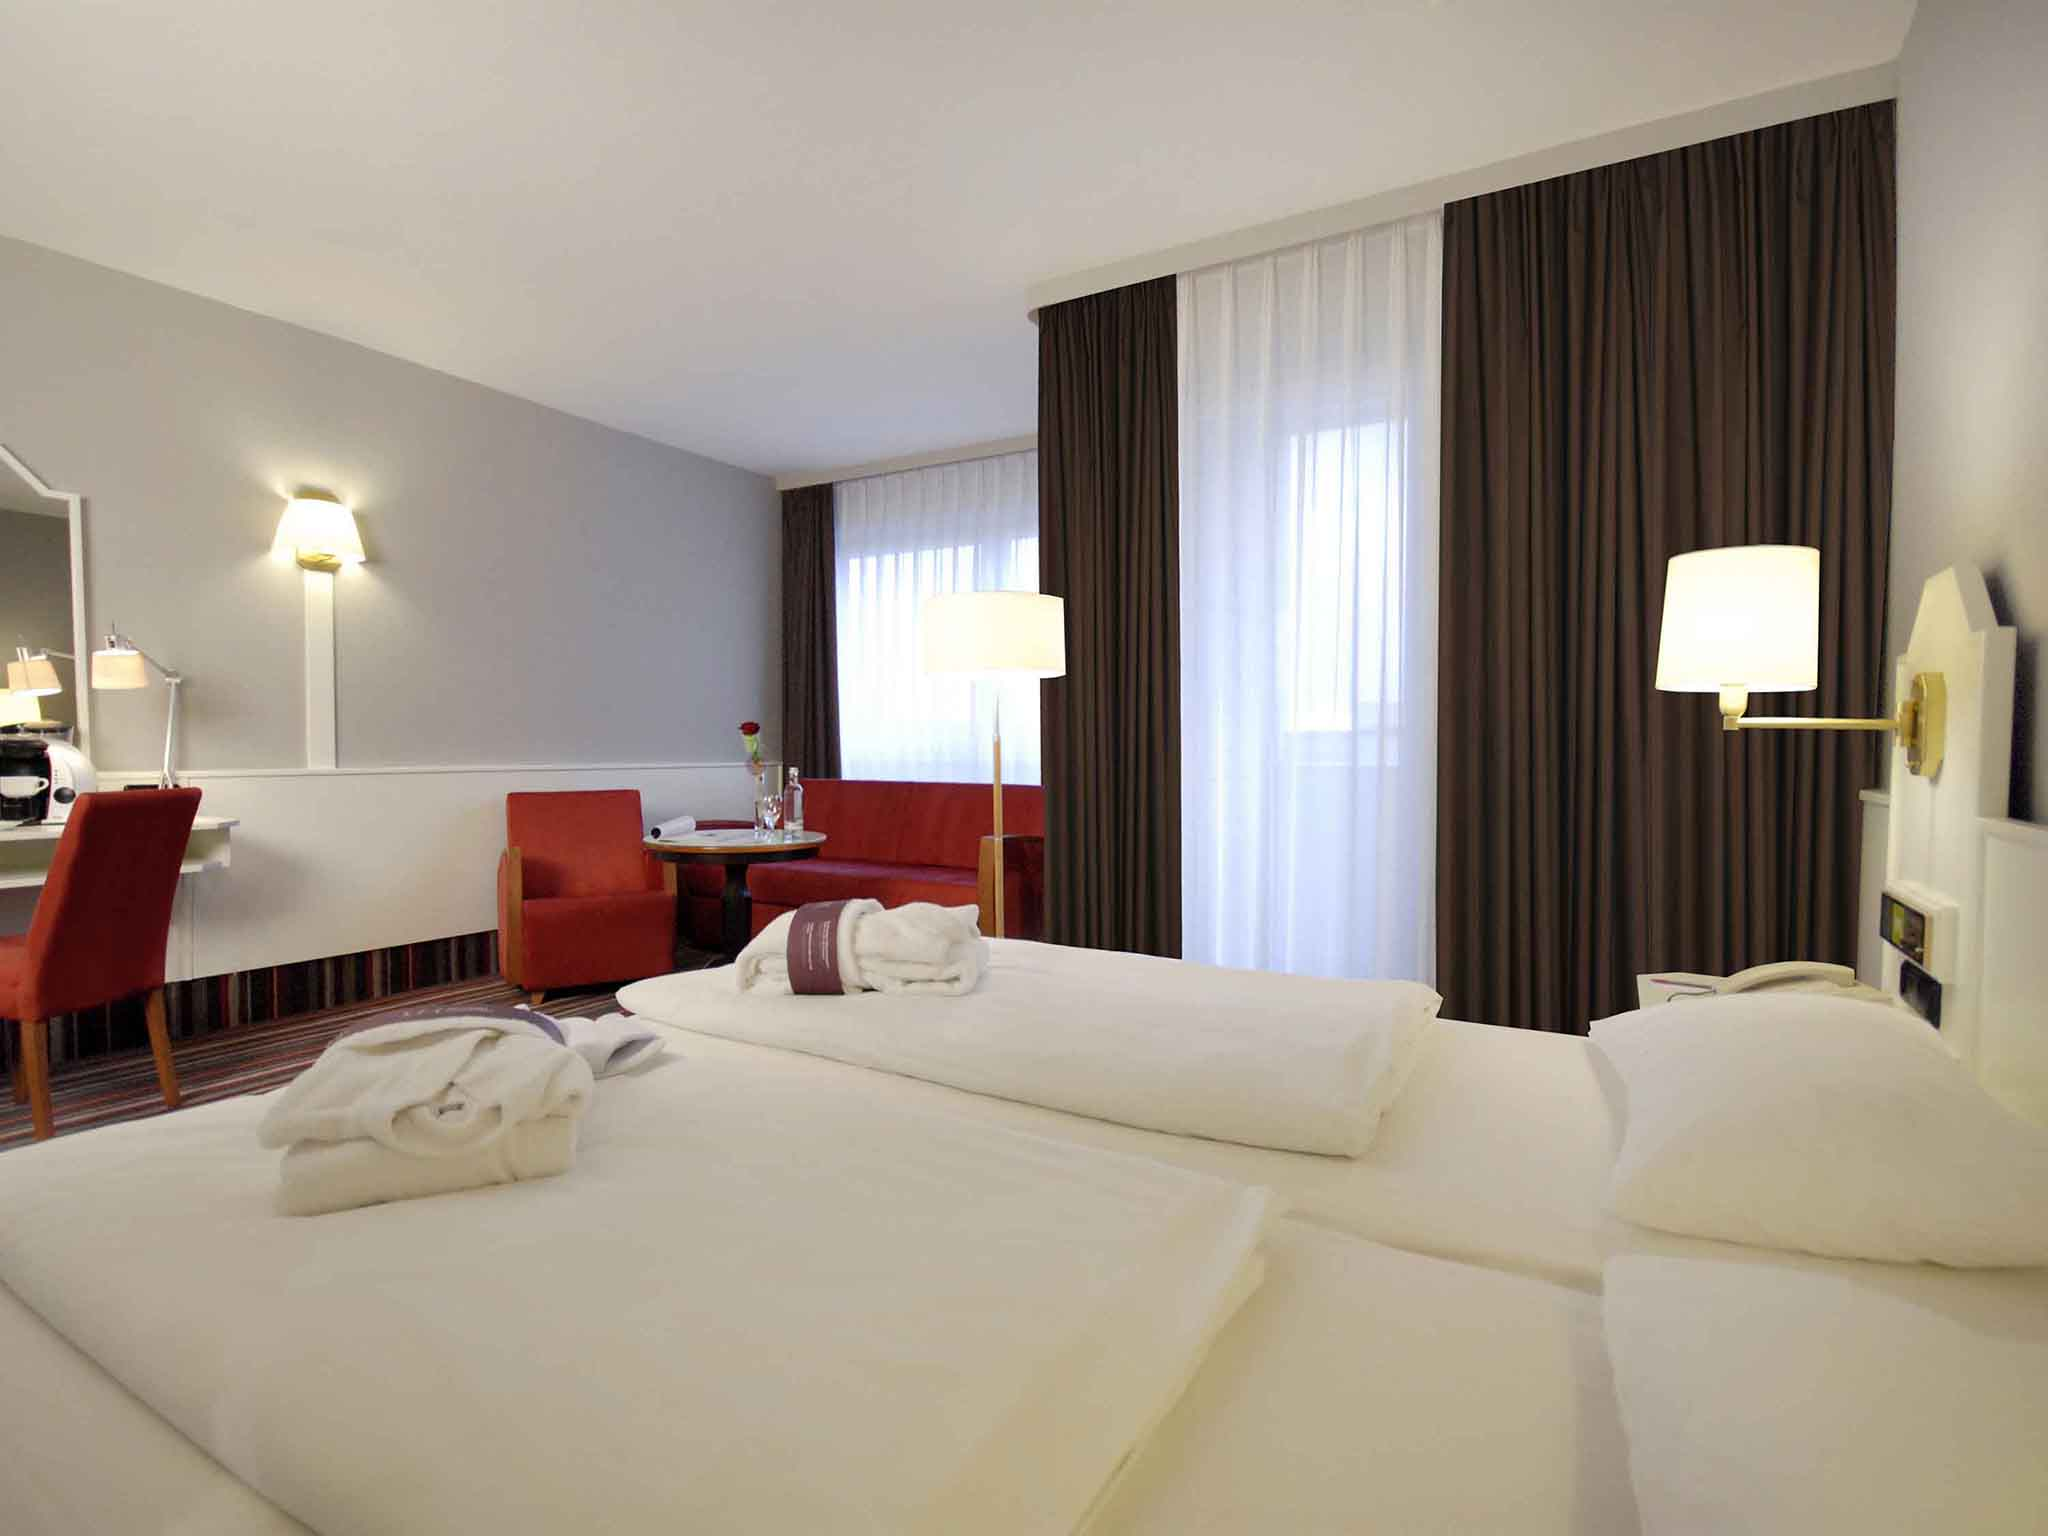 ... Rooms   Mercure Hotel Bad Homburg Friedrichsdorf ...